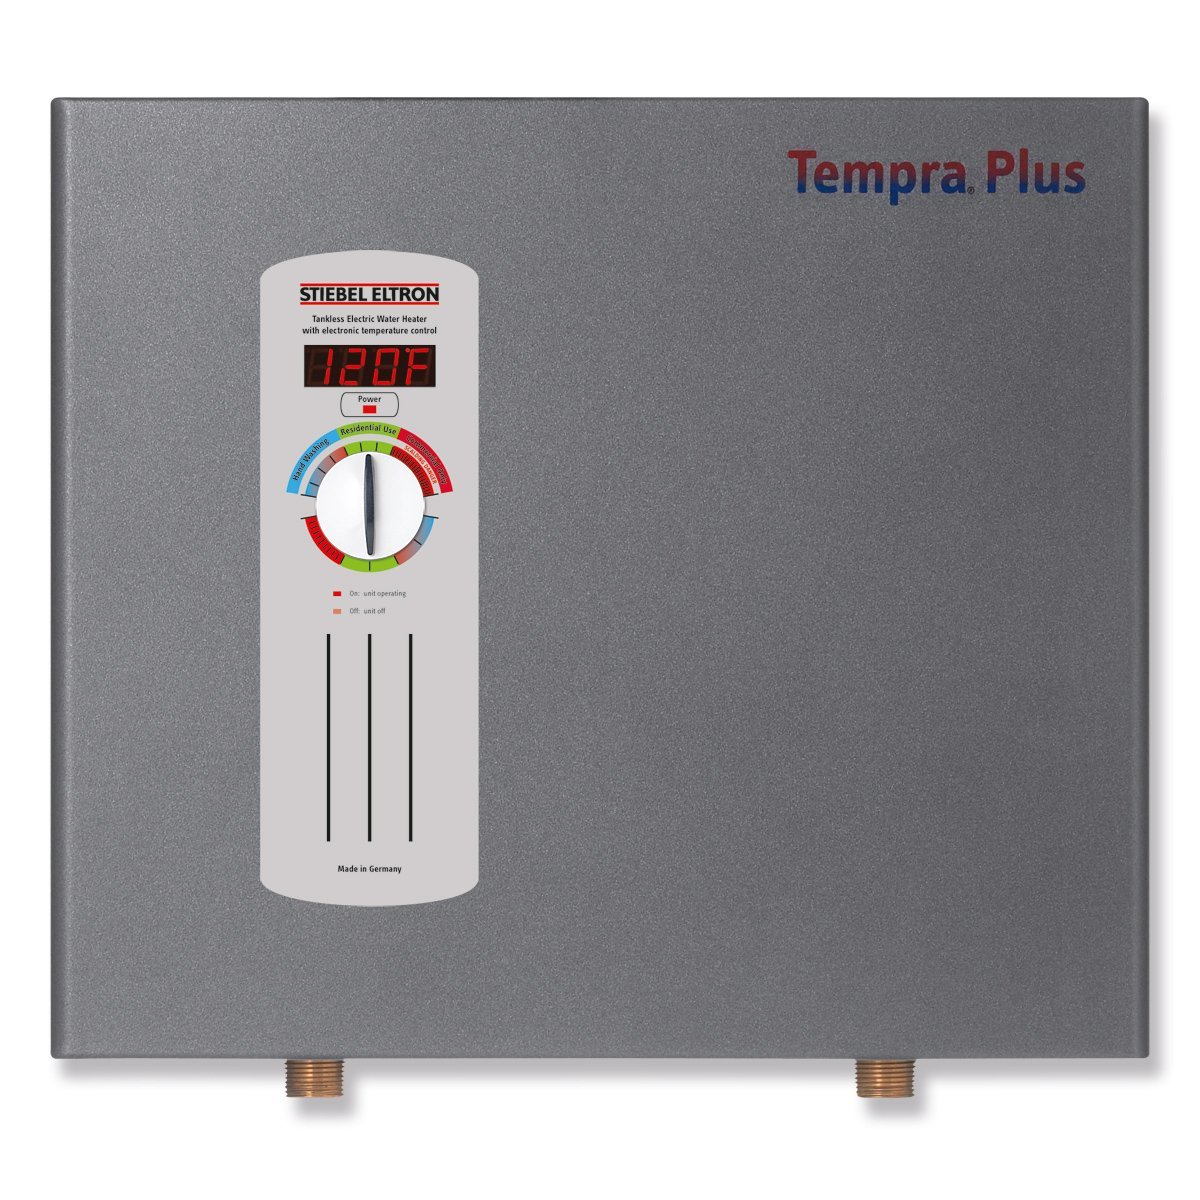 Best Tankless Water Heater-Stiebel Eltron Tempra 24 Plus